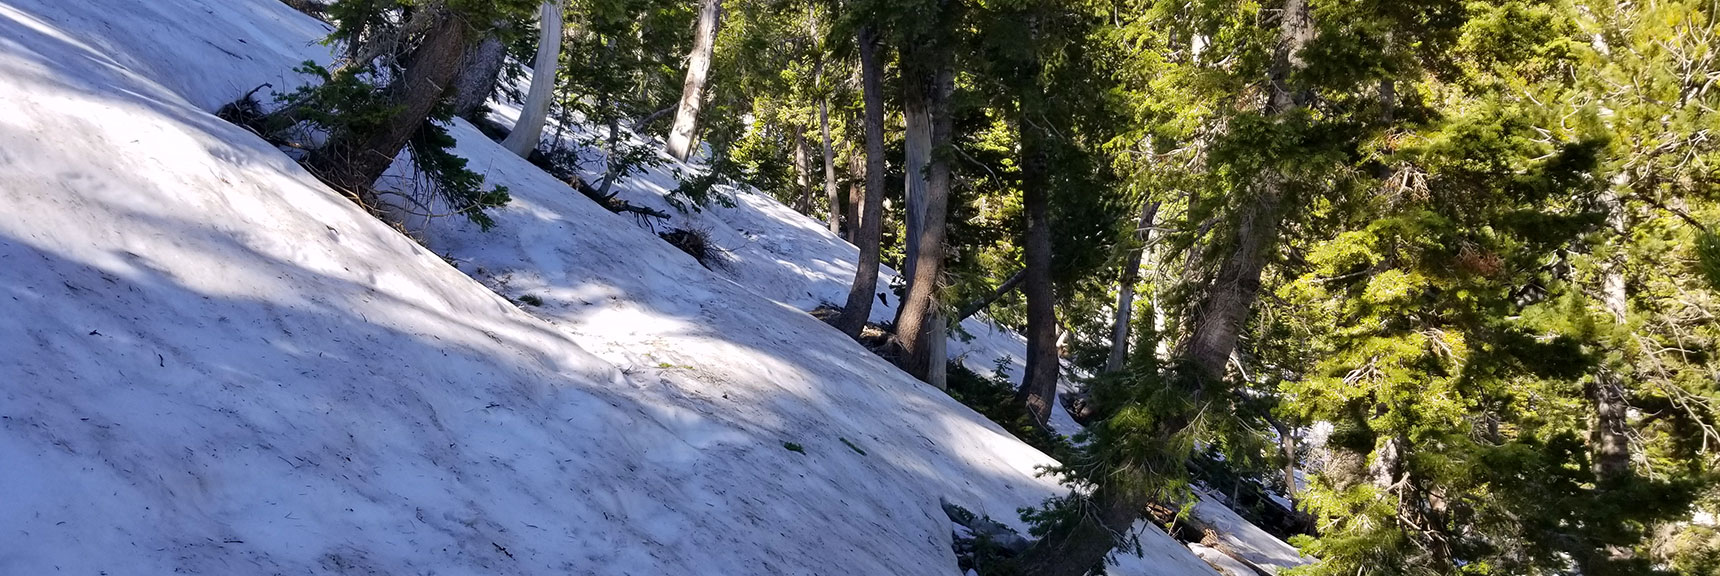 Snow Dead End on Mt Charleston South Climb Trail June 15th at 8,900ft!